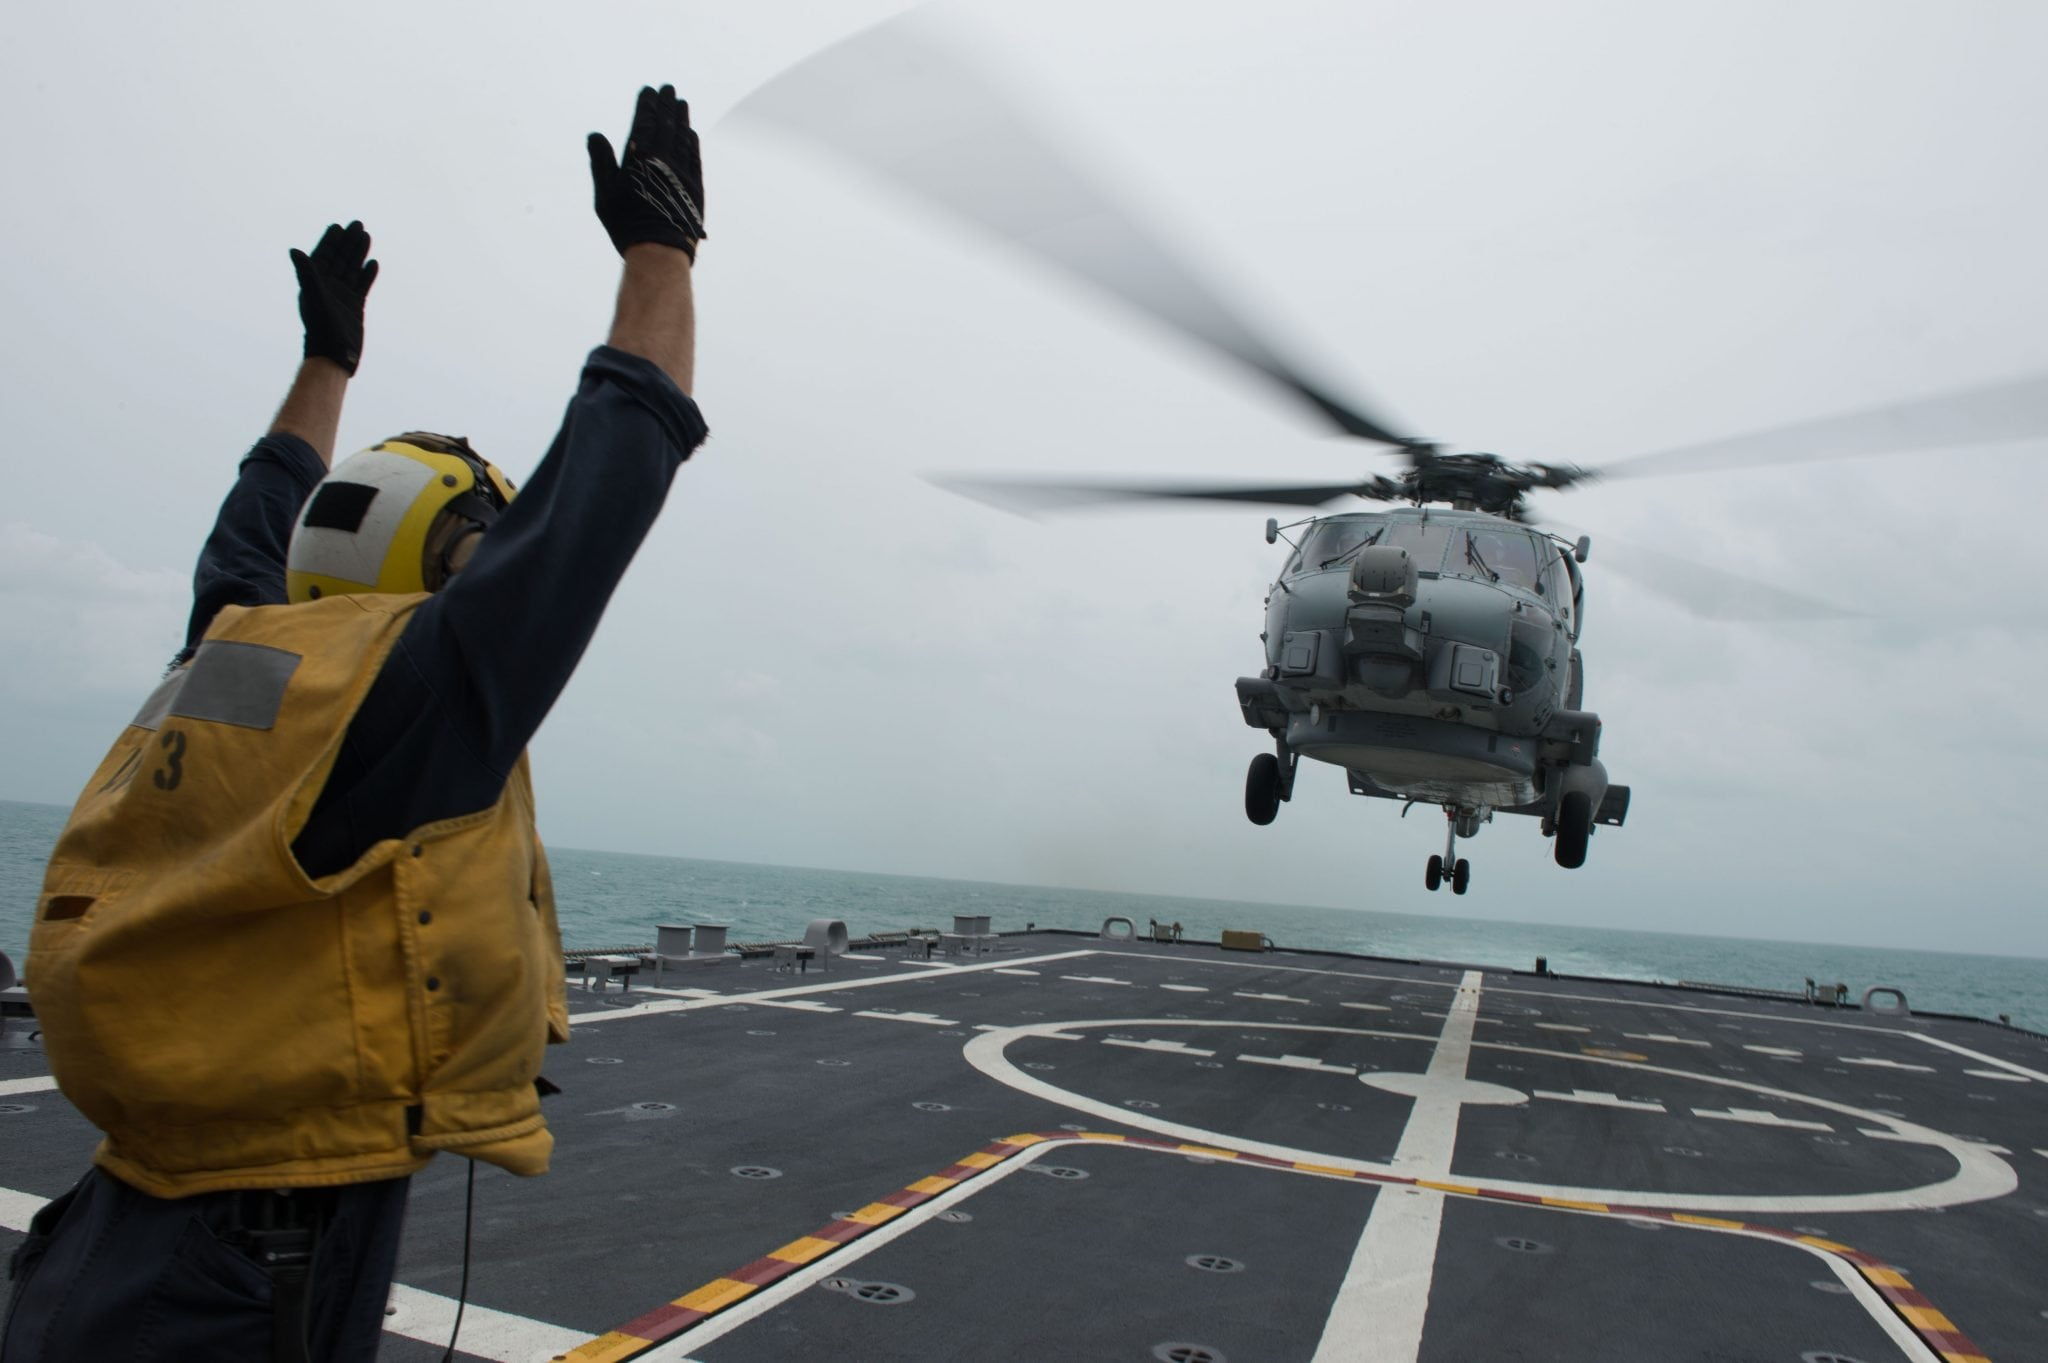 MH-60R Sea Hawk helicopter onducting helicopter search and recovery operations as part of the Indonesian-led efforts to locate missing AirAsia Flight QZ8501